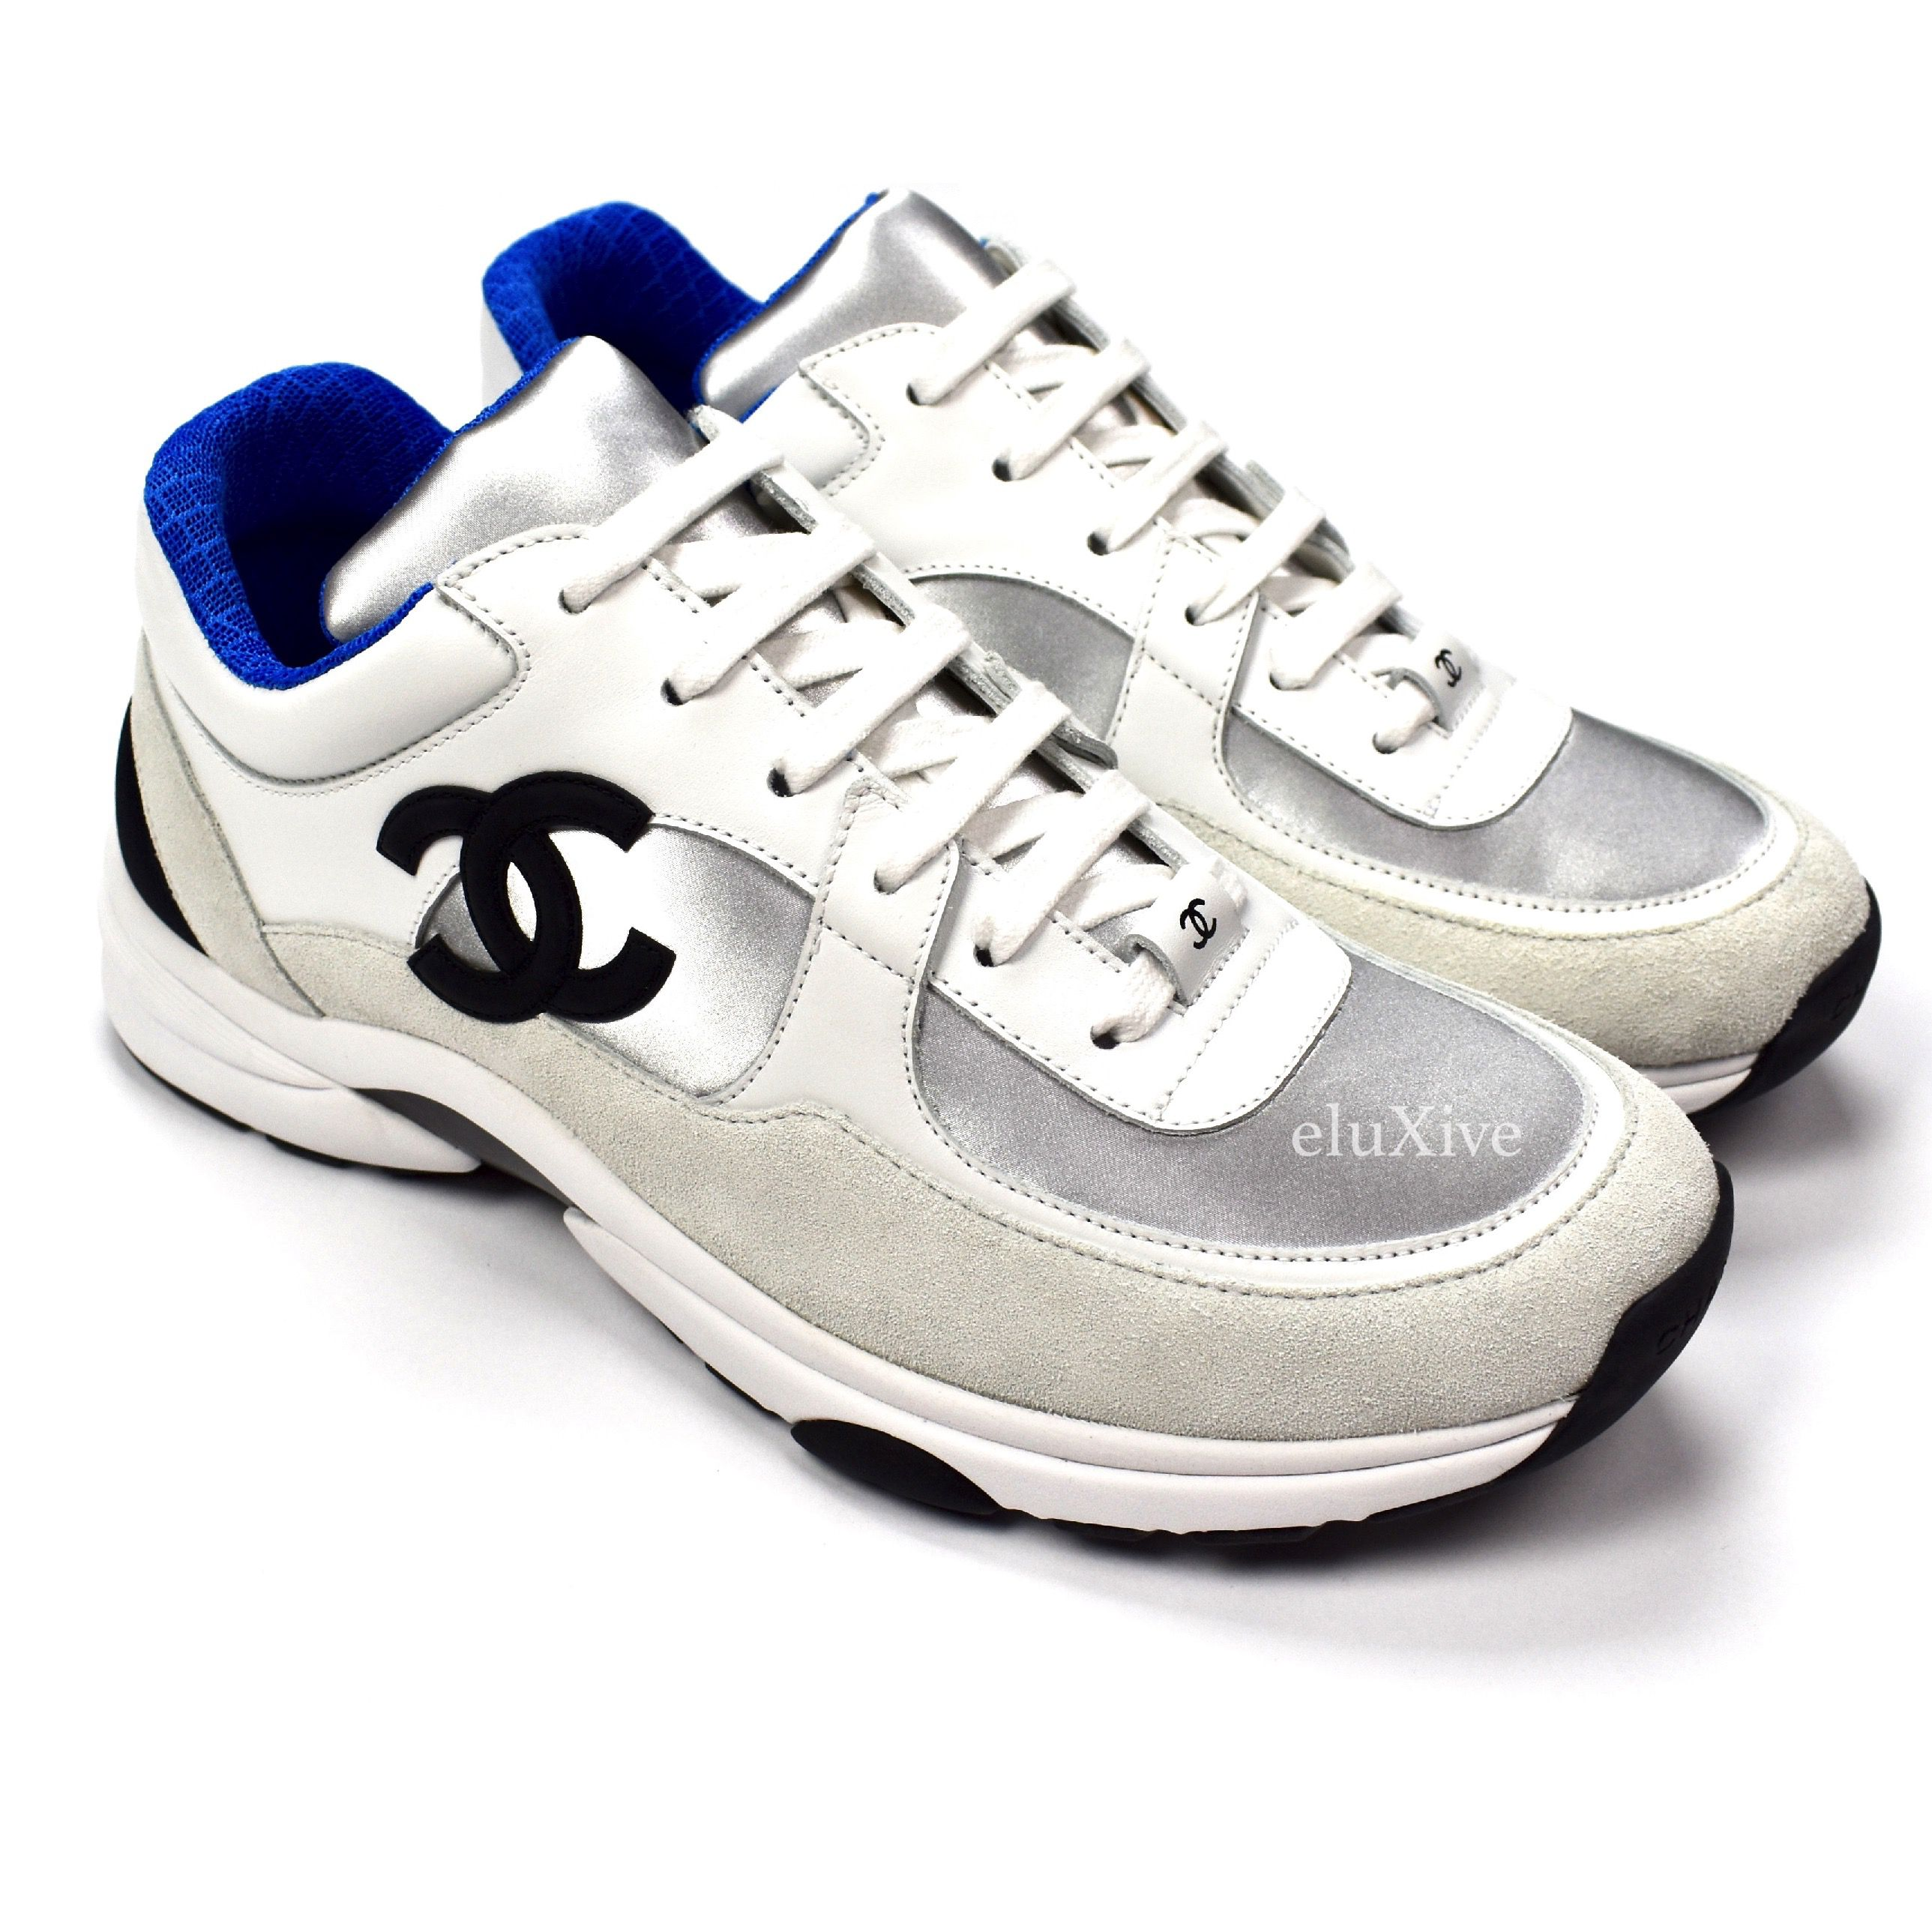 6b0162a1d00470 Chanel 2018 Trainer Sneakers 18p Blue Ds | Grailed